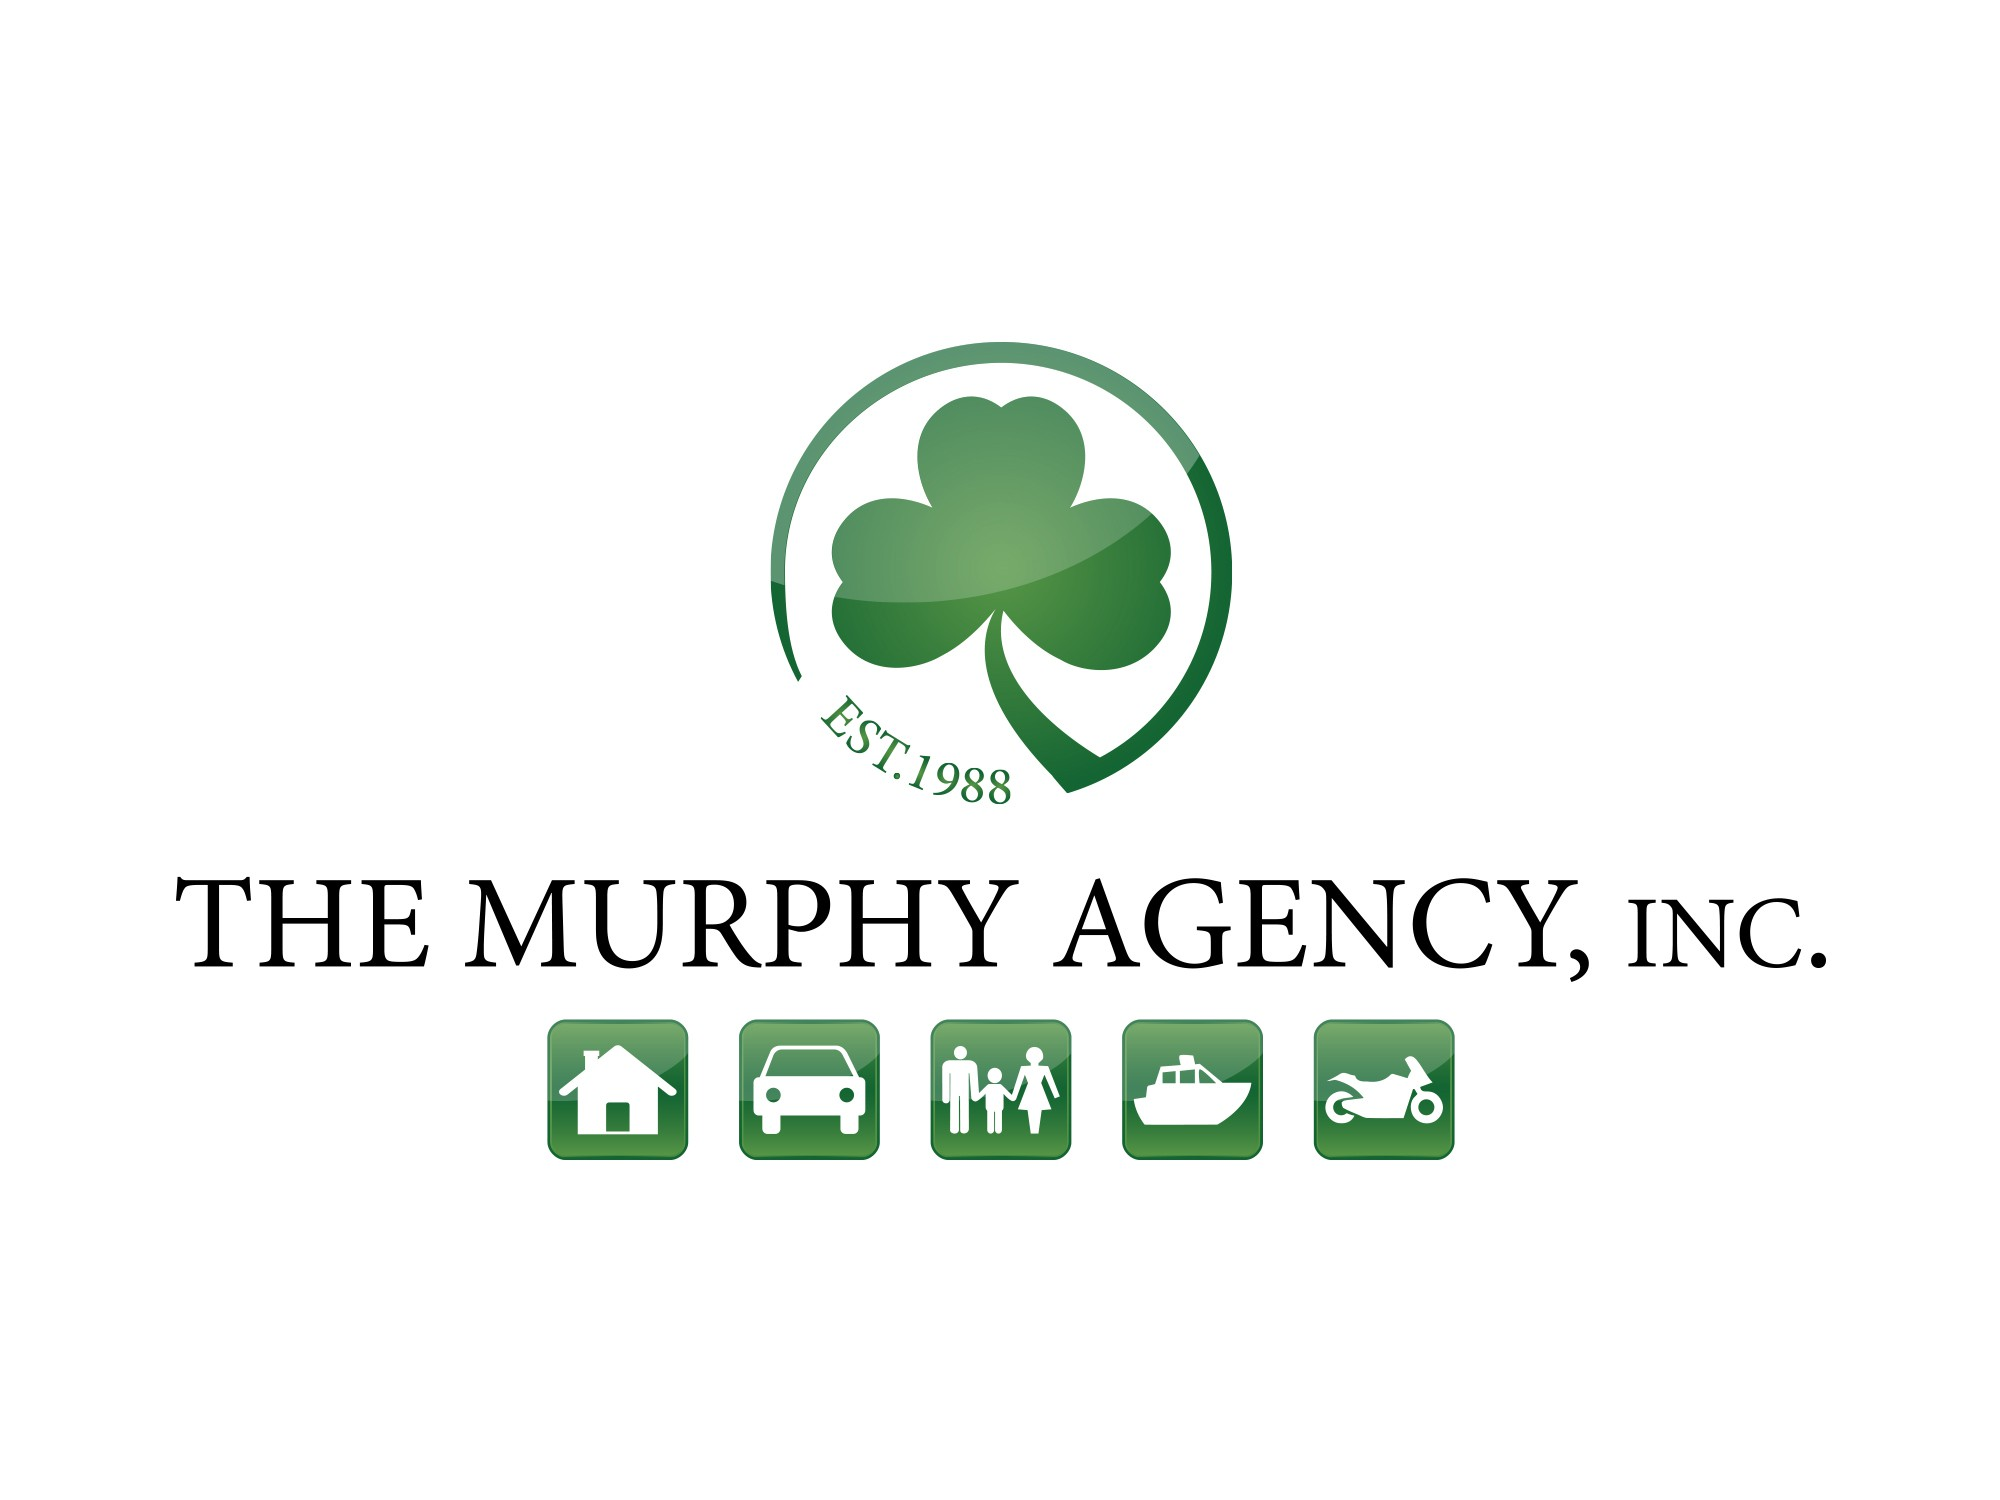 New logo wanted for The Murphy Agency